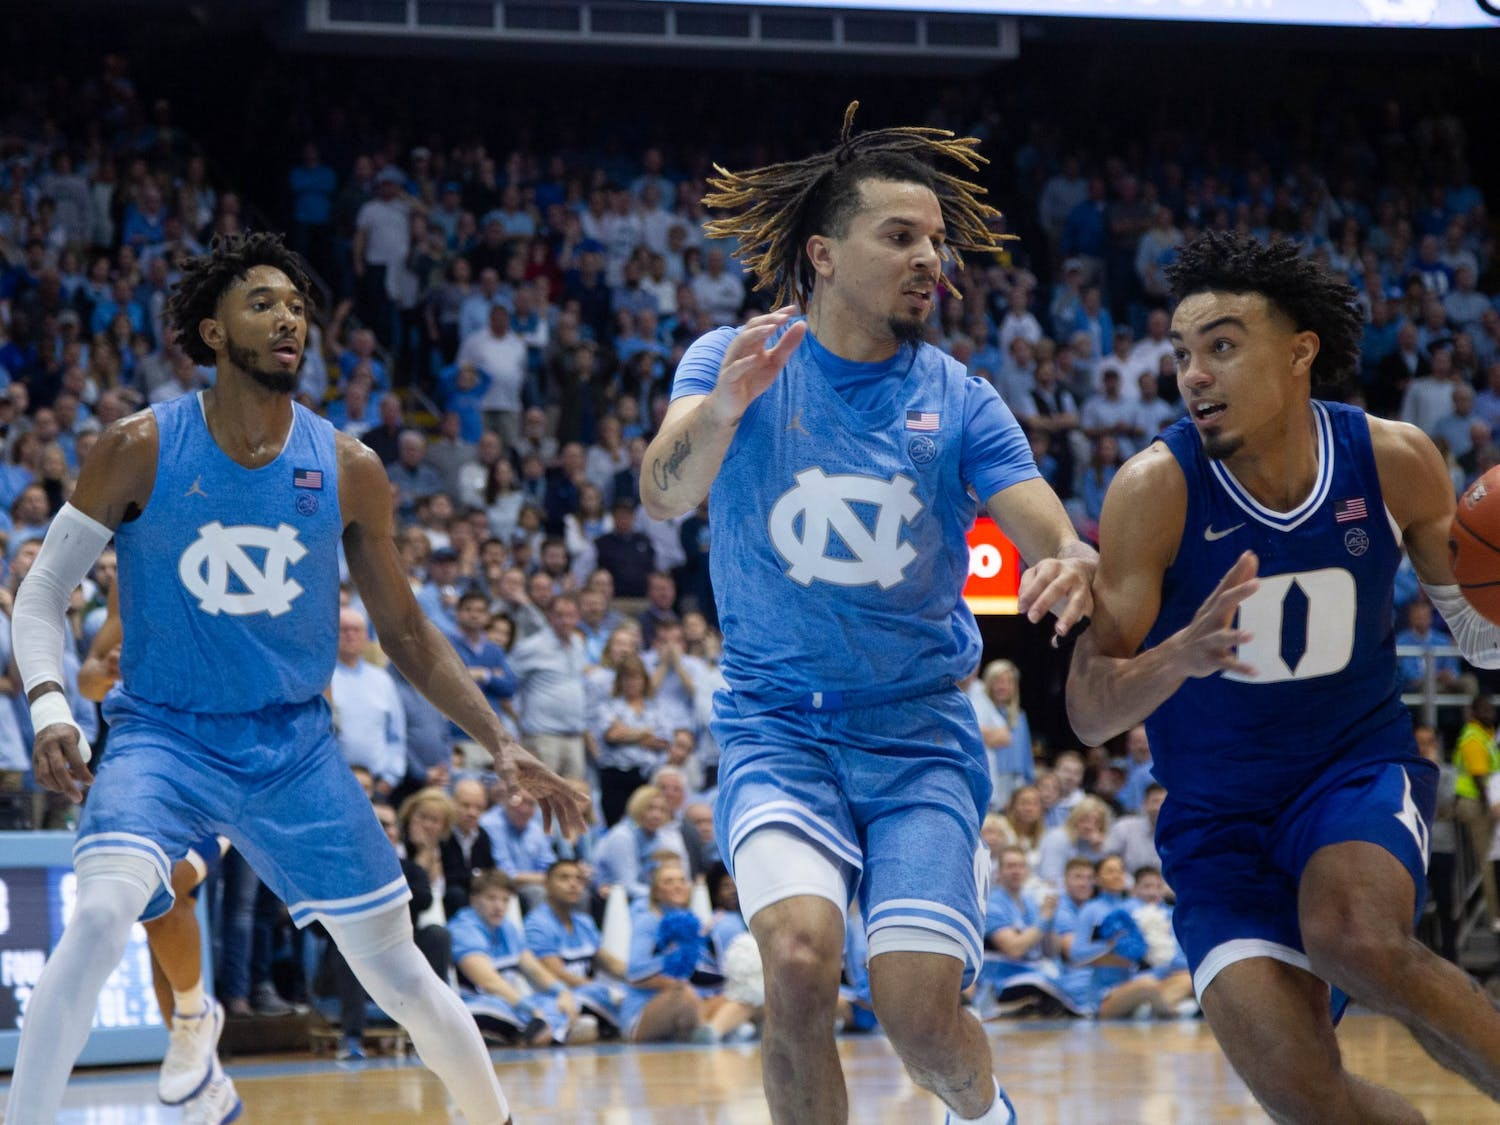 Duke's sophomore guard Tre Jones (3) and UNC's first-year guard Cole Anthony (2) collide during the game against Duke in the Smith Center on Saturday, Feb. 8. 2020. UNC lost to Duke 98-96.